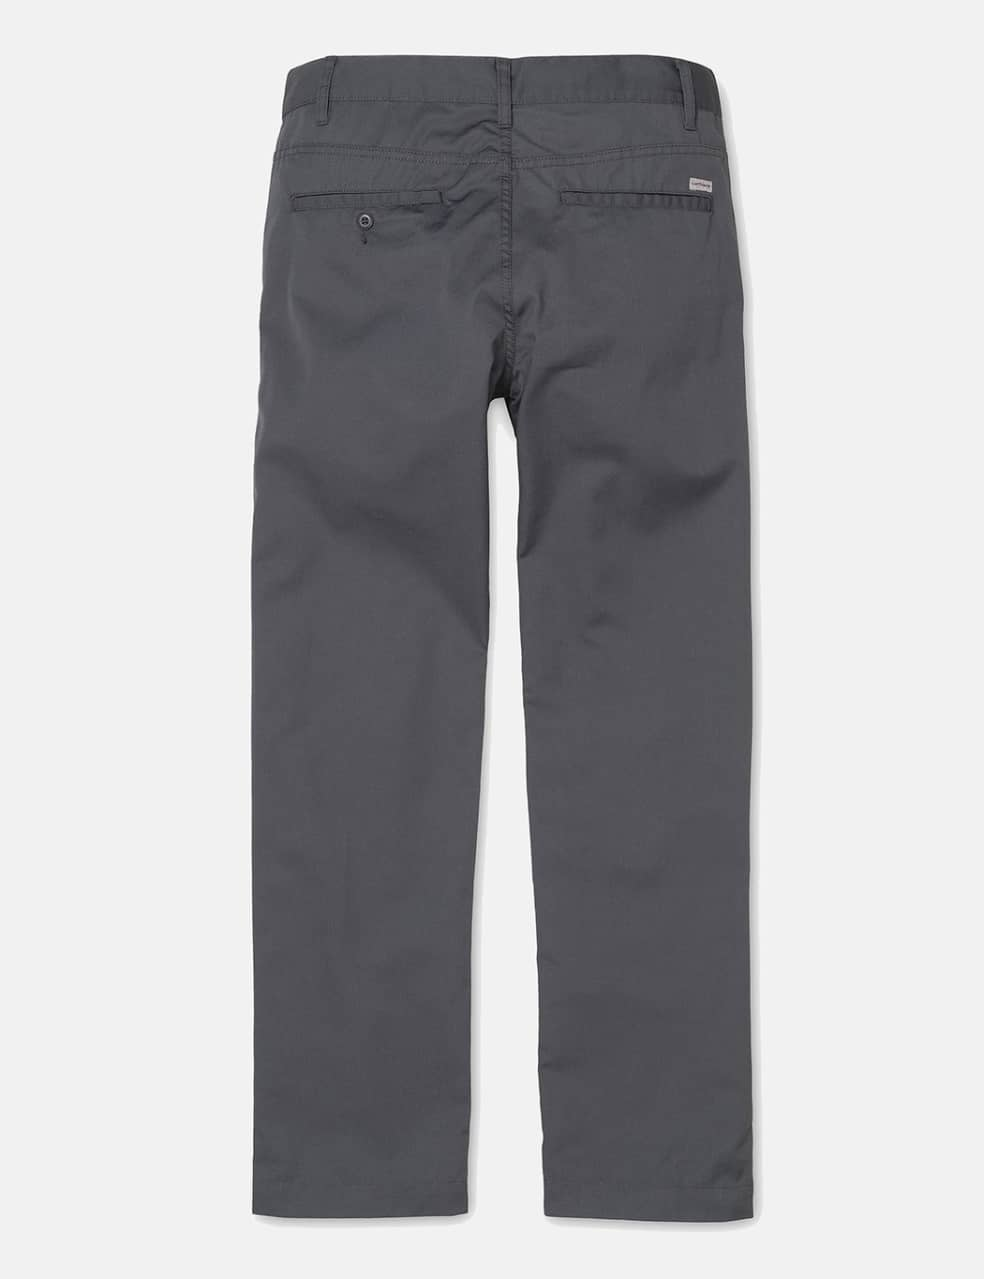 Carhartt-WIP Station Pant - Blacksmith rinsed | Trousers by Carhartt WIP 3